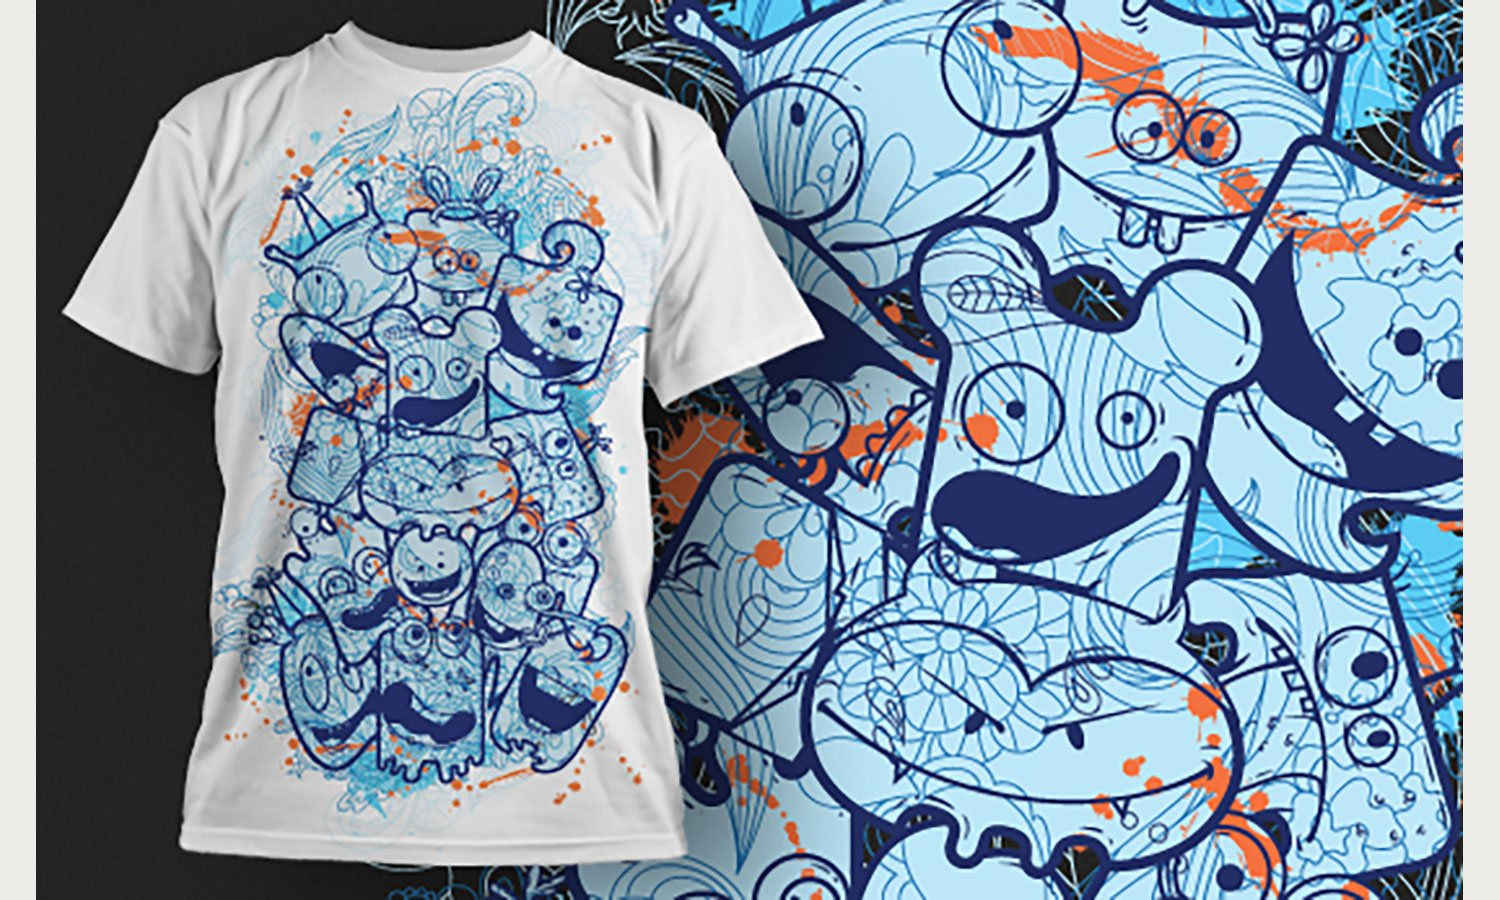 Blue - Printed T-Shirt for Men, Women and Kids - TS300